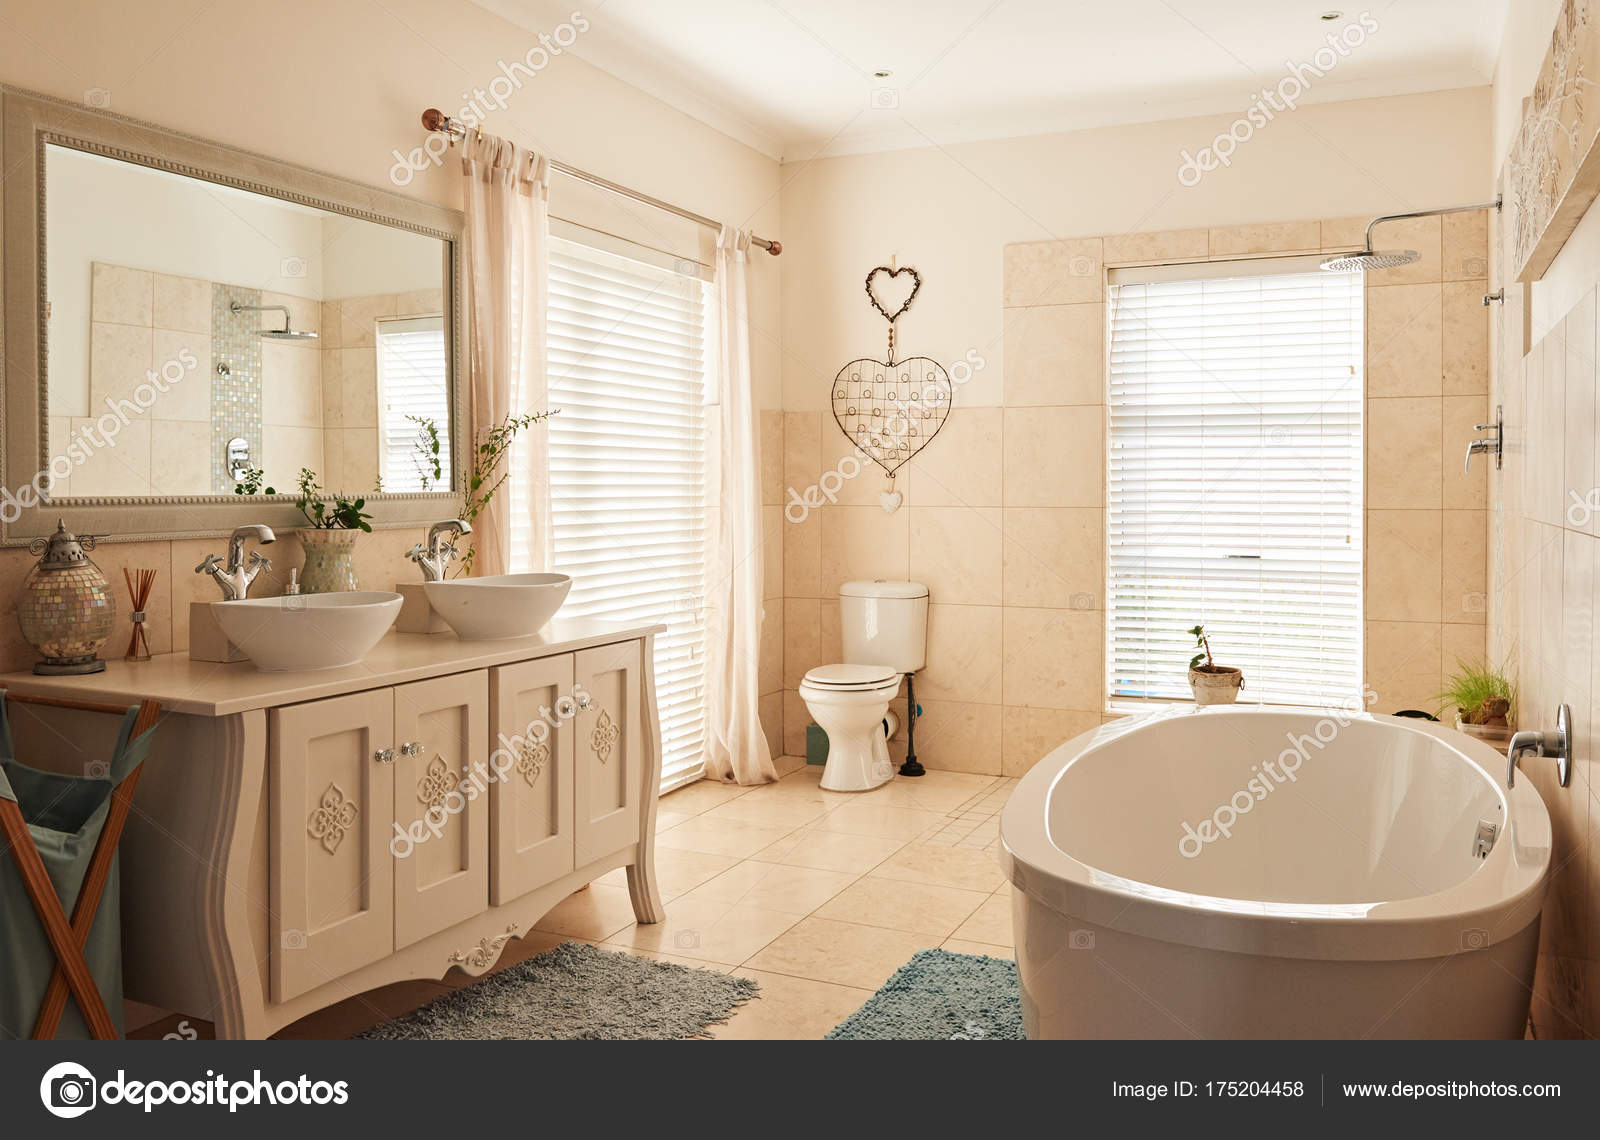 Bagno residenziale in stile country u foto stock mavoimages